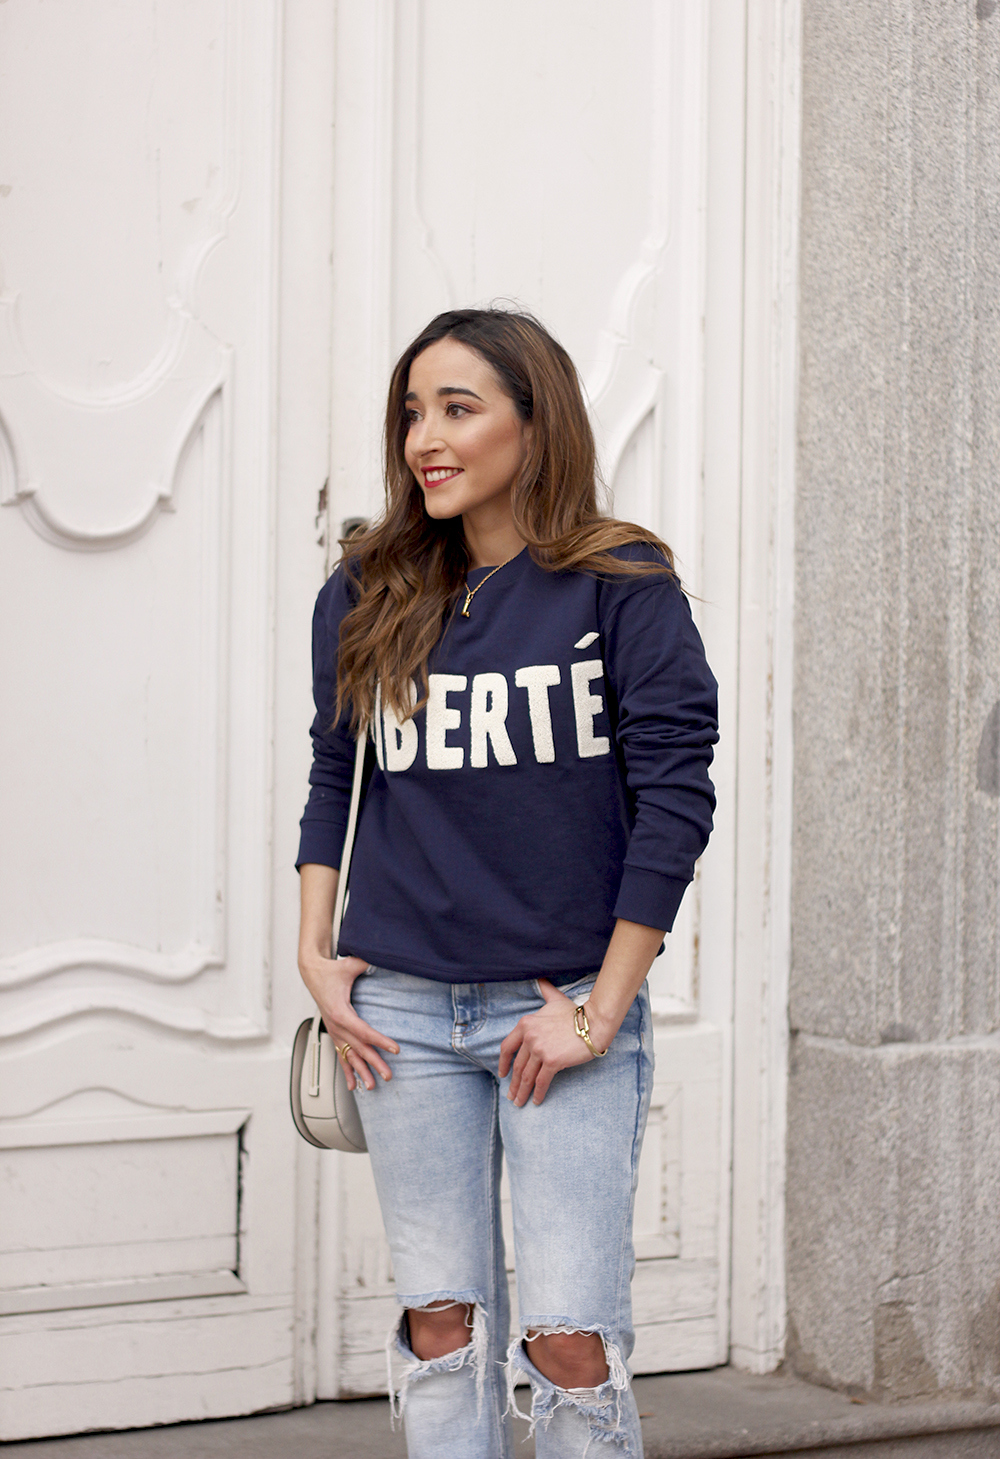 Sweatshirt ripped jeans clavin klein white bag high heels street style outfit 20195